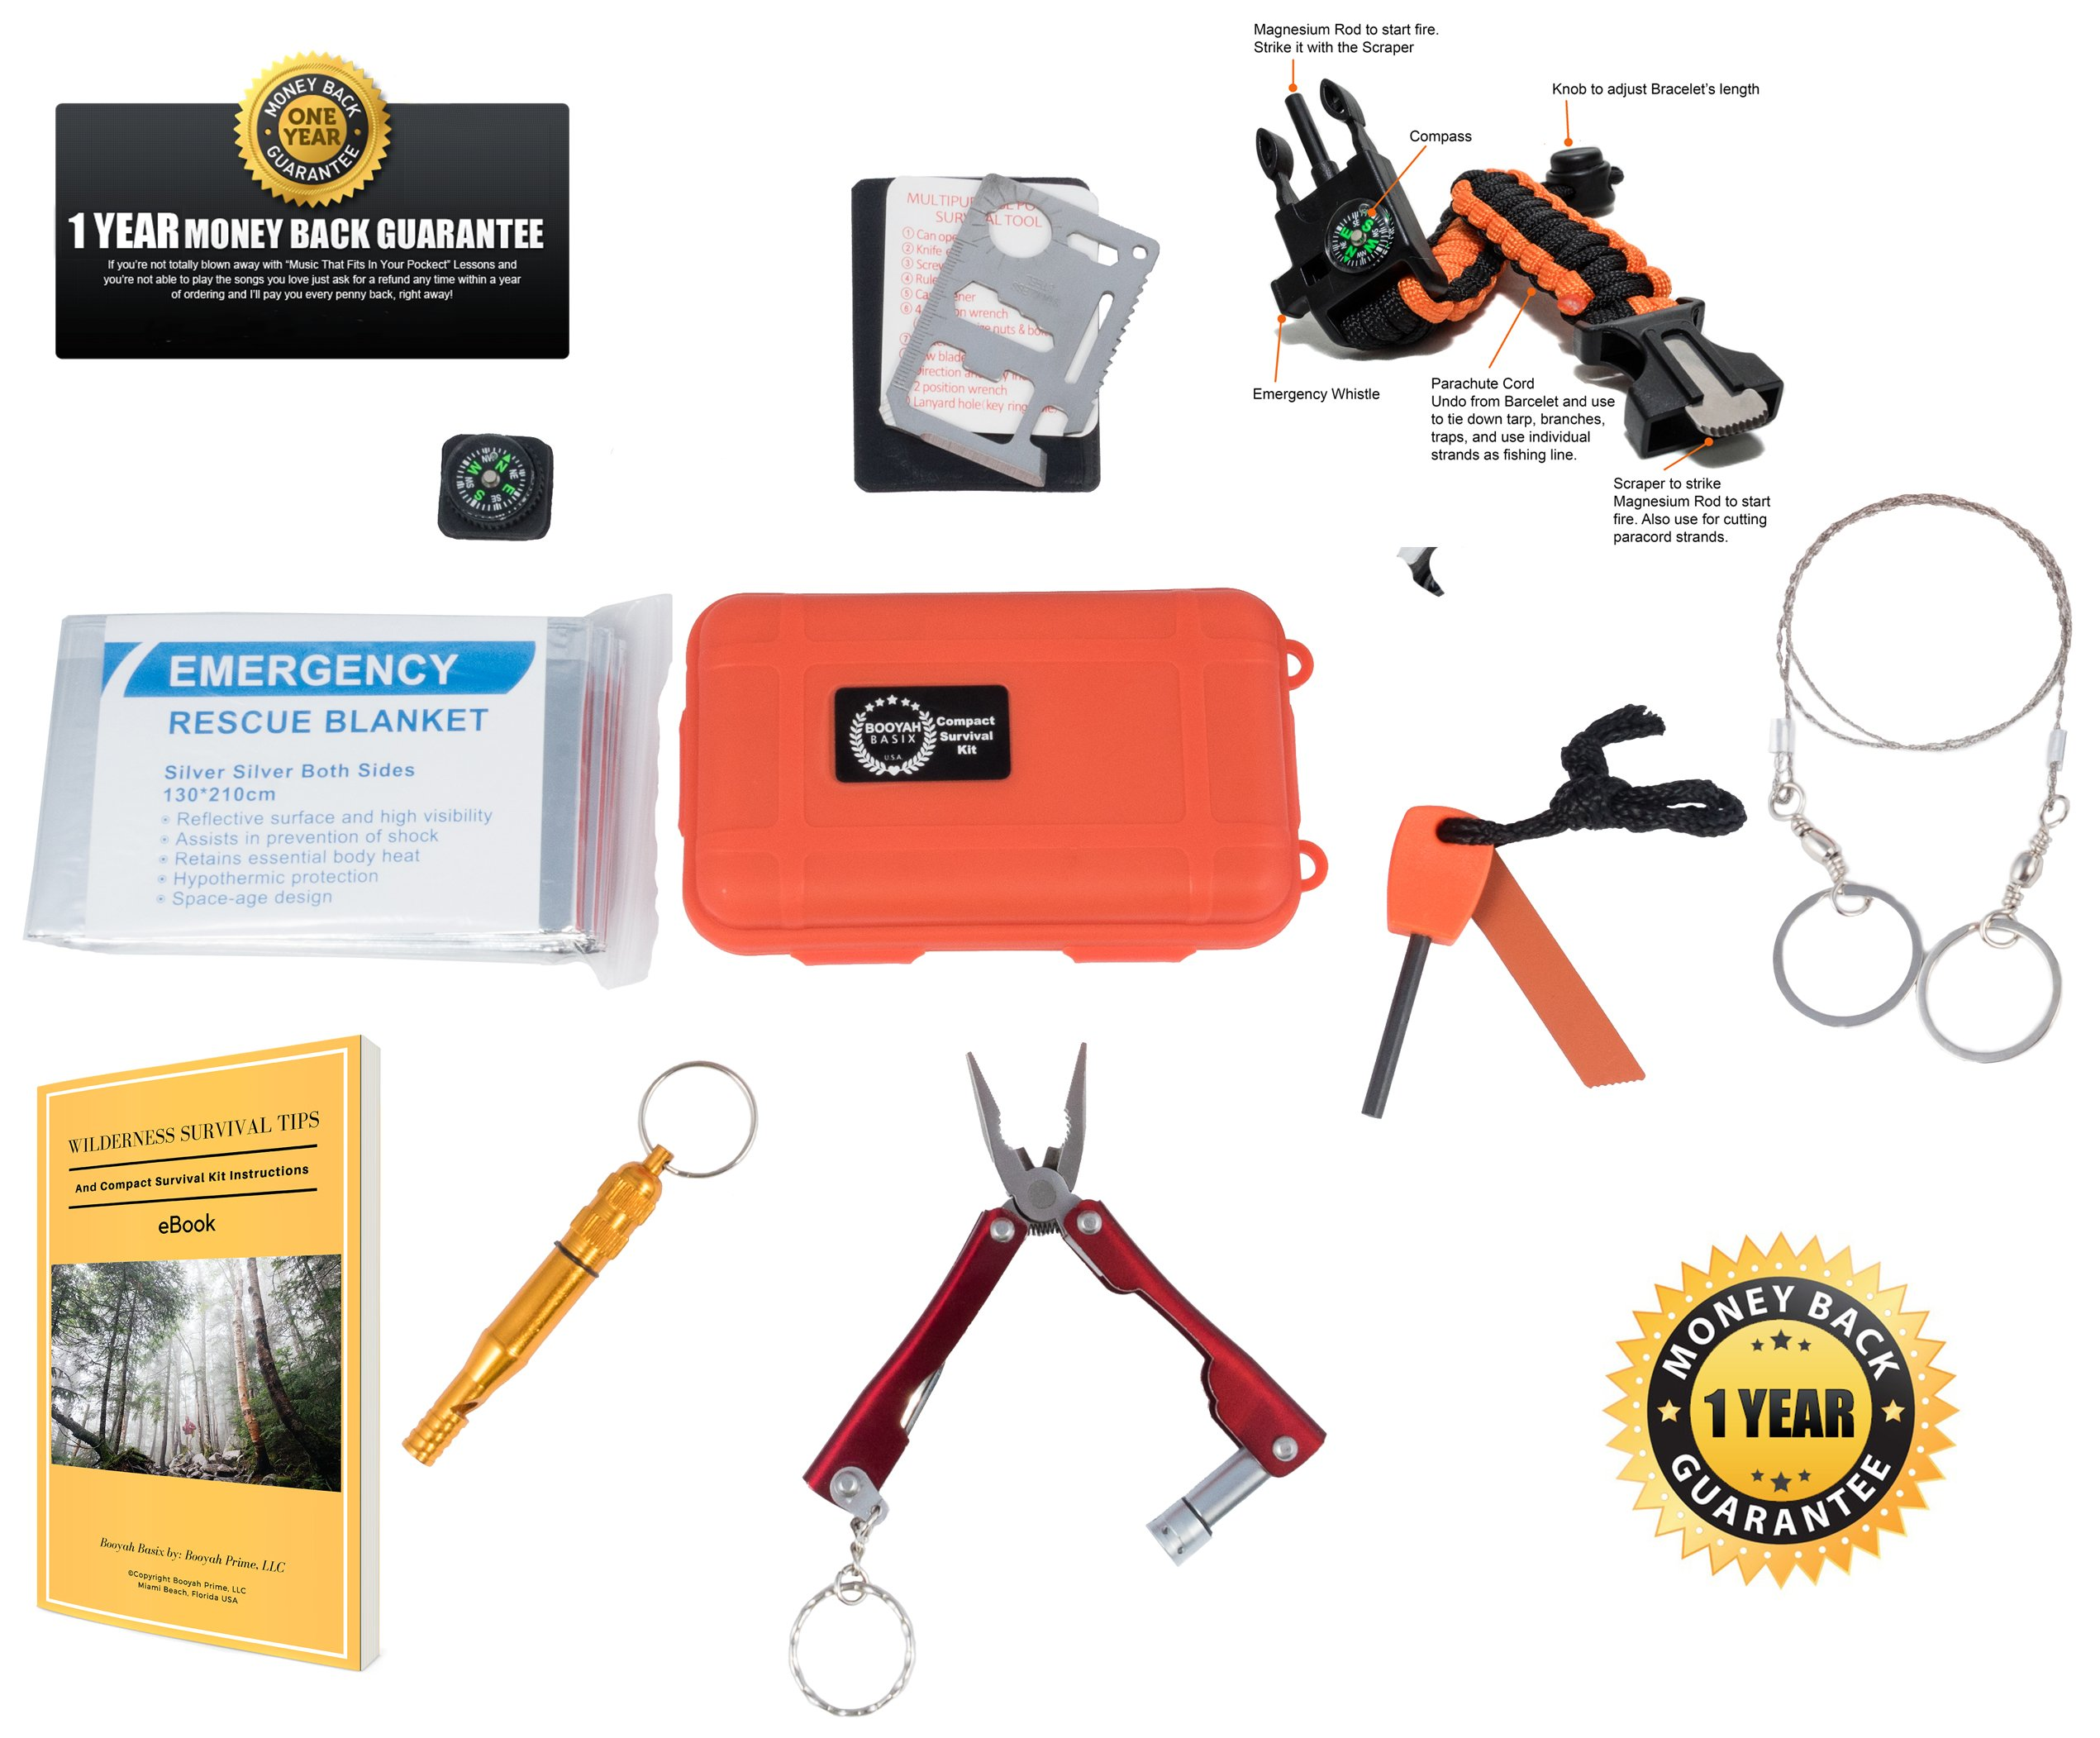 Emergency Survival Kit Bundle.11 Items. Pocket size. Essential Camping Survival Gear, Folding knife, Fire Starter, Compass, Paracord Survival Bracelet, Emergency Blanket, Whistle, Ebook, and more by Booyah Basix (Image #1)